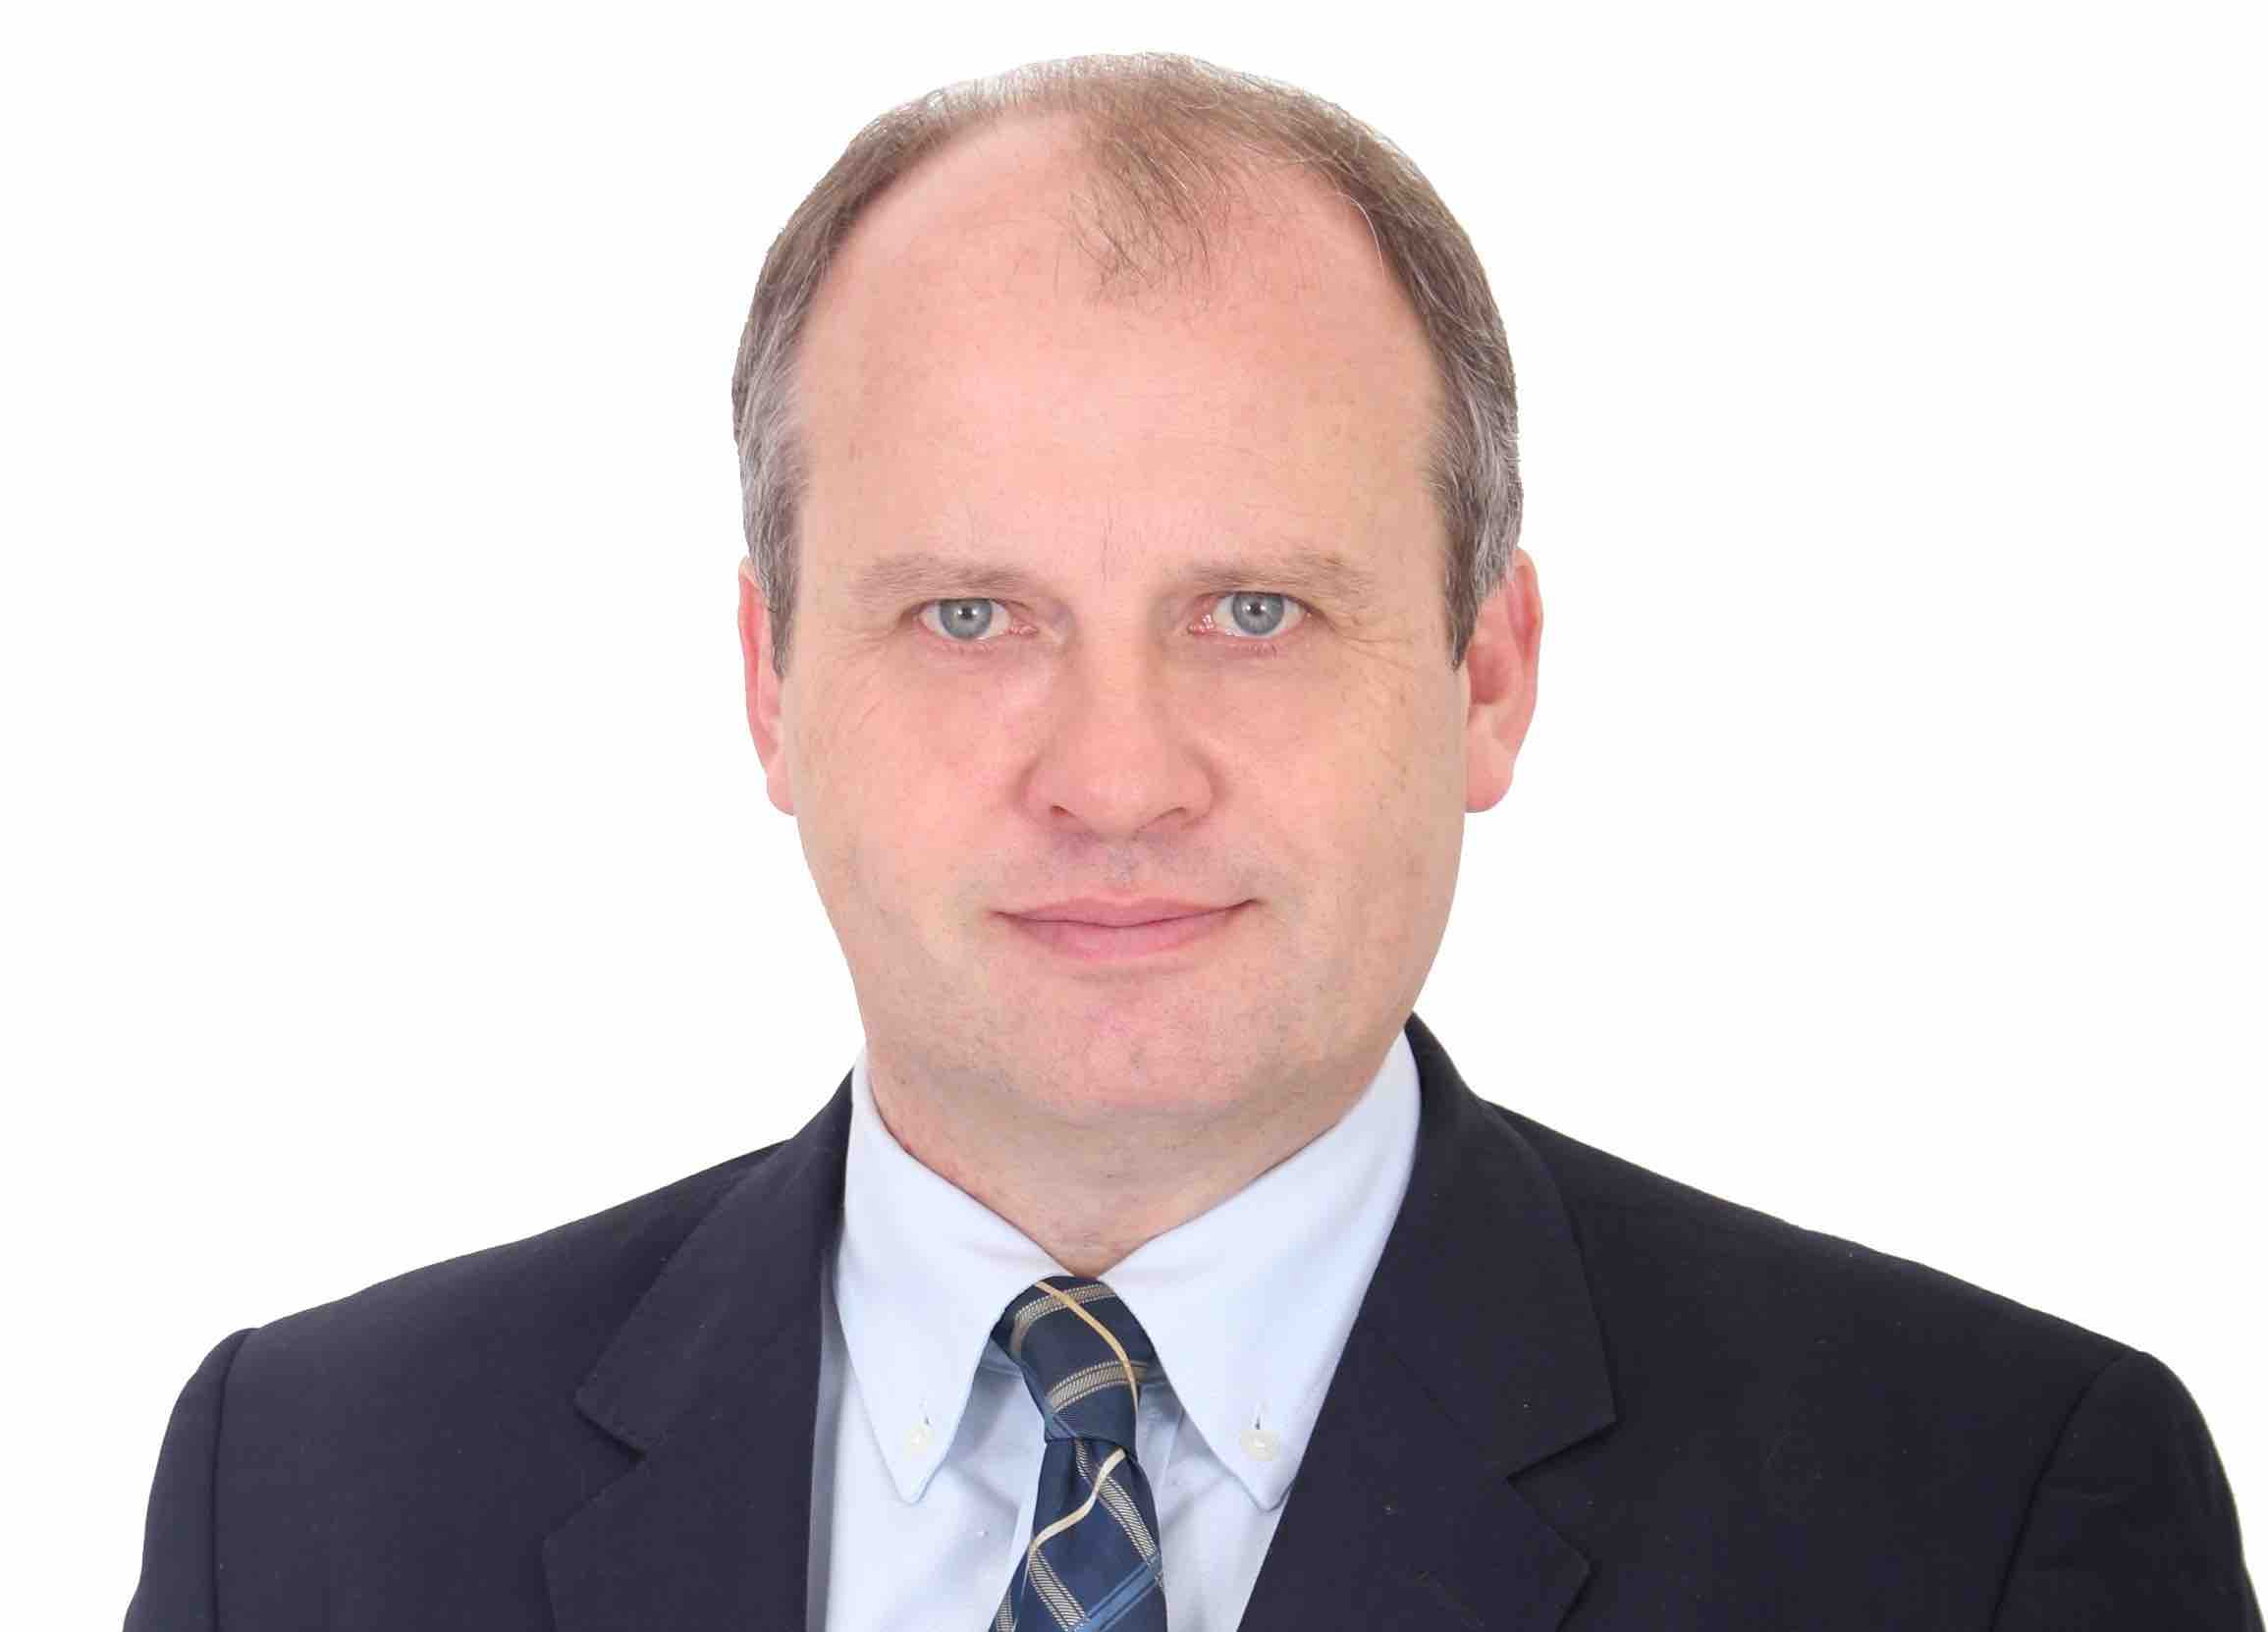 David Whitton, the Regional Sales Director for Middle East and Africa at Kodak Alaris